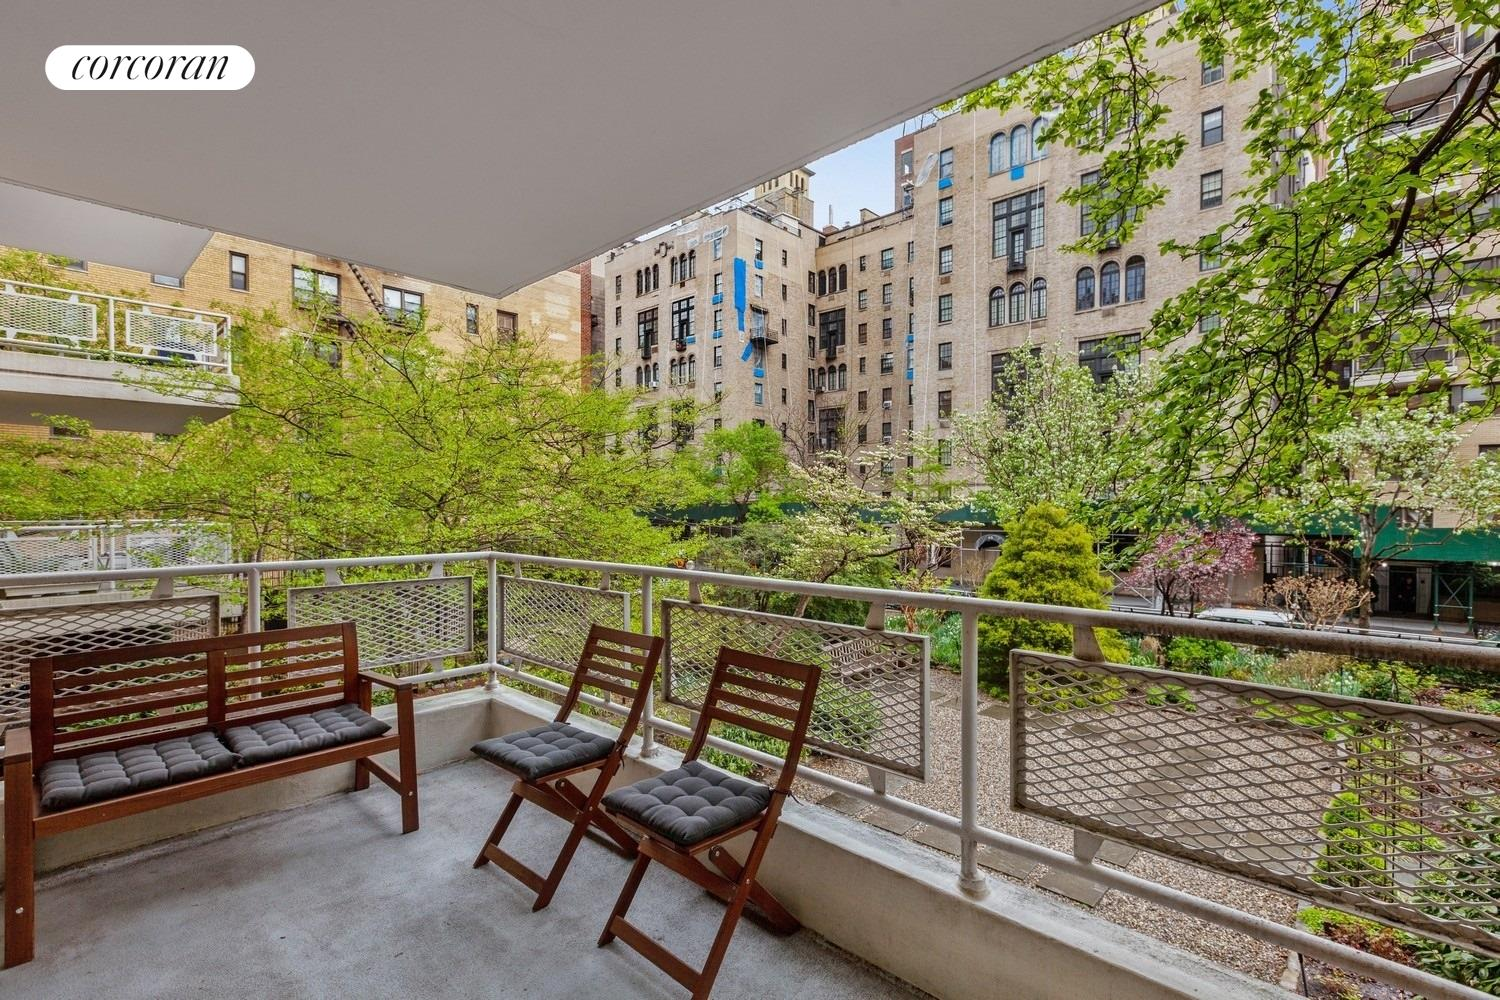 40 East 9th Street, 2F, Overlooking the spectacular garden